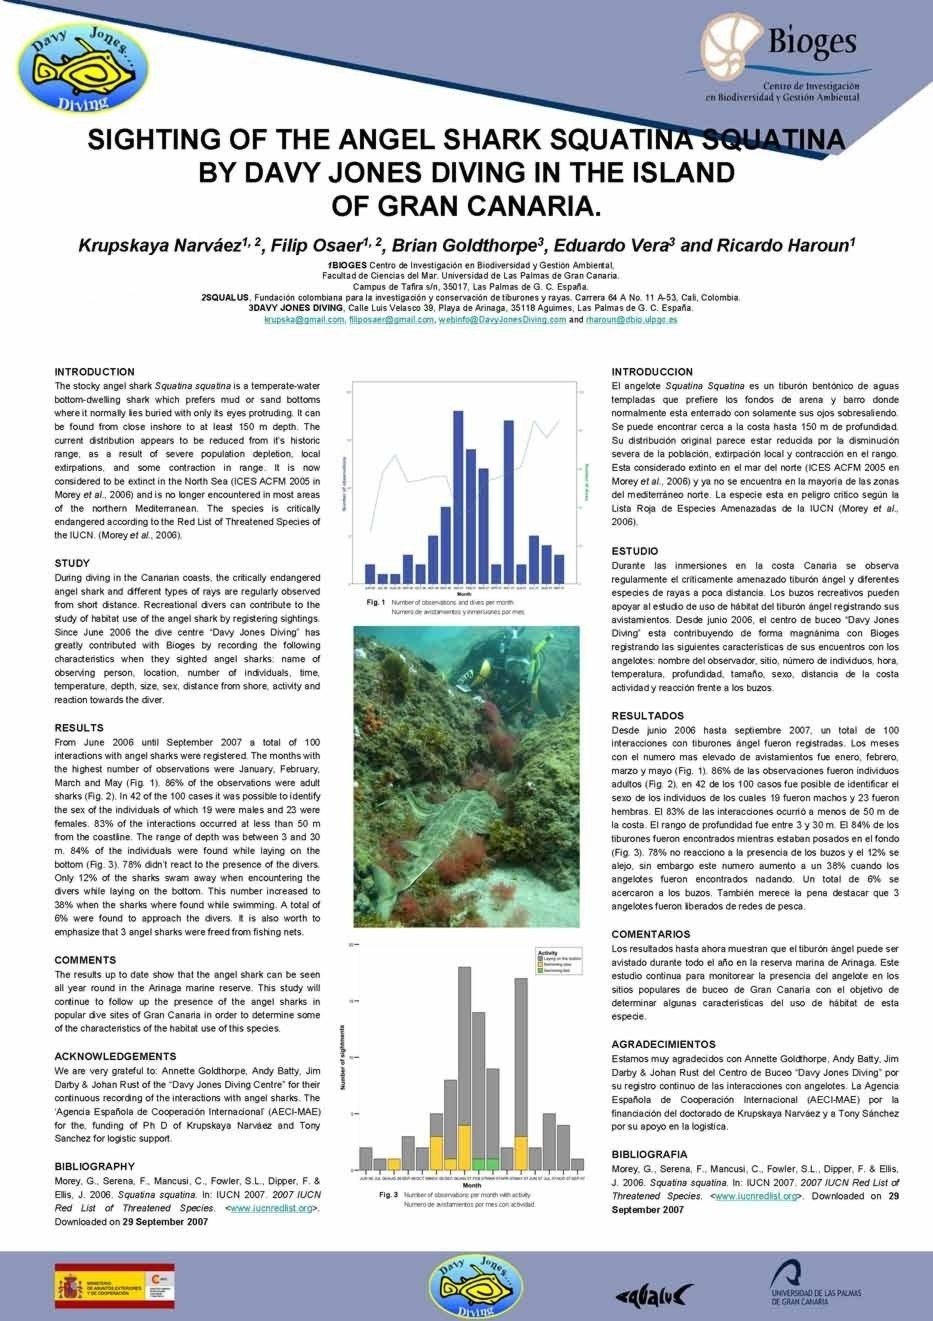 Sharks and Diving Gran Canaria - Article on Angelshark Sightings ...